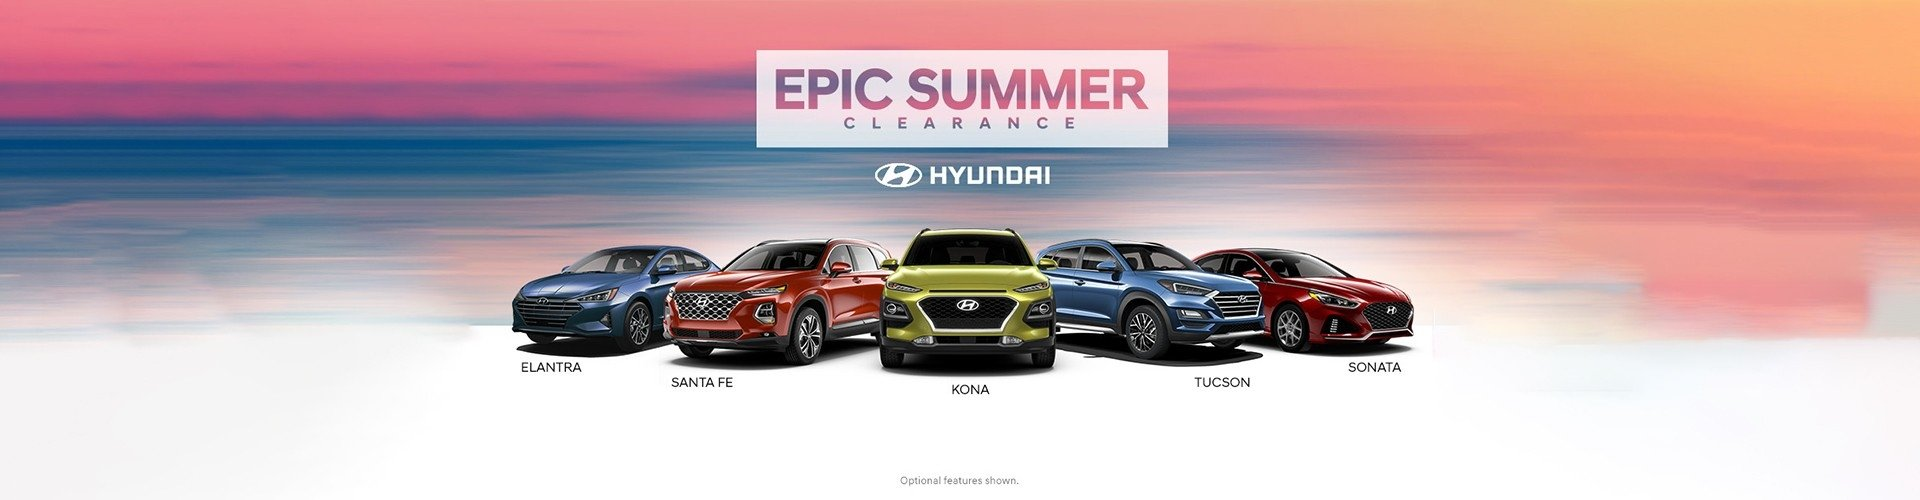 Car Clearance Deals 2016 >> Hickville Long Island Hyundai Dealership New Used Cars For Sale